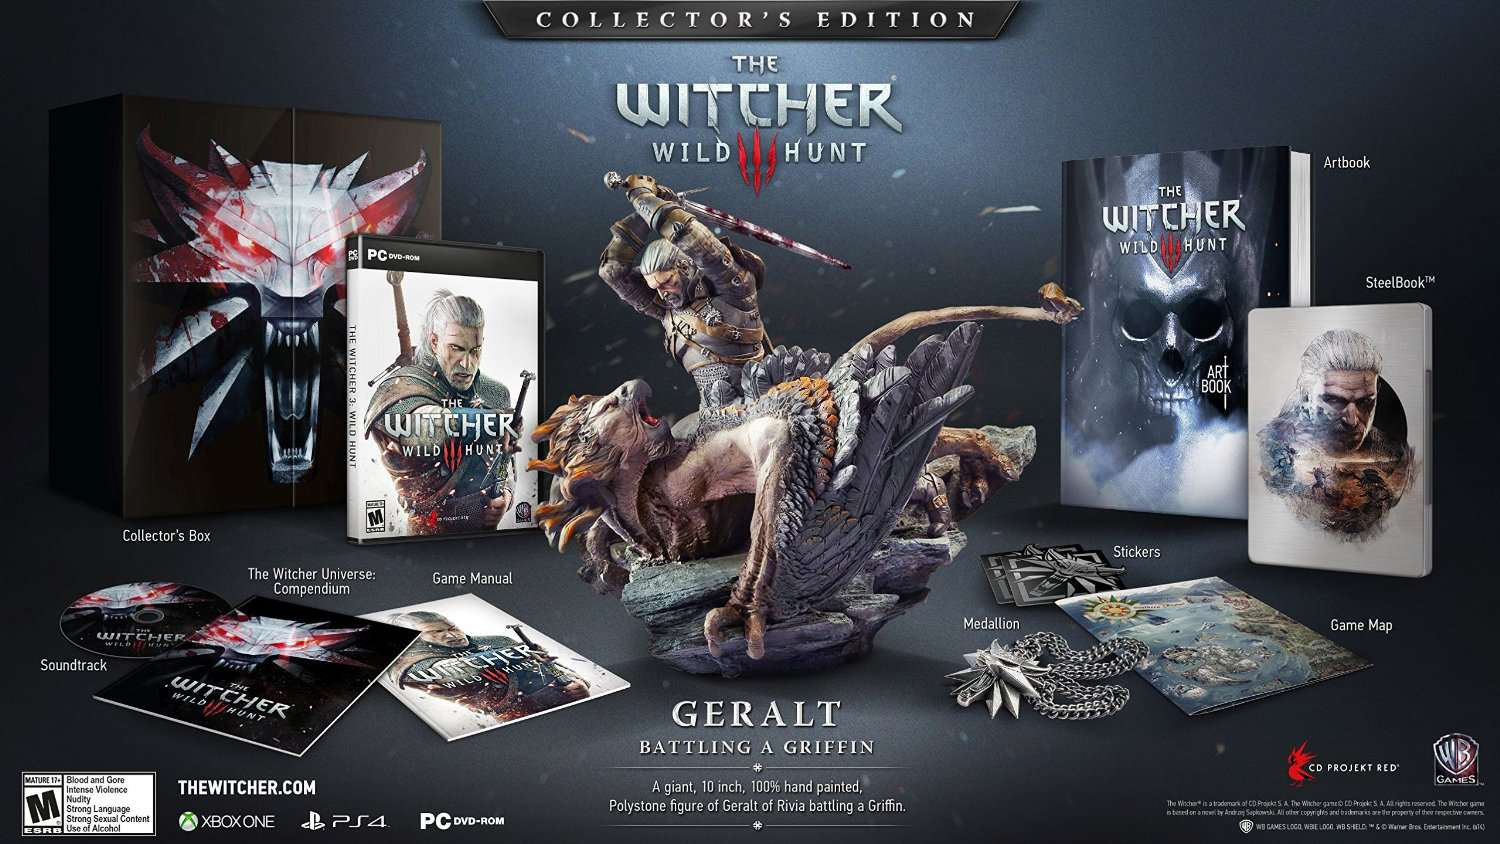 The Witcher 3 Wild Hunt Collector's Edition Box & Contents